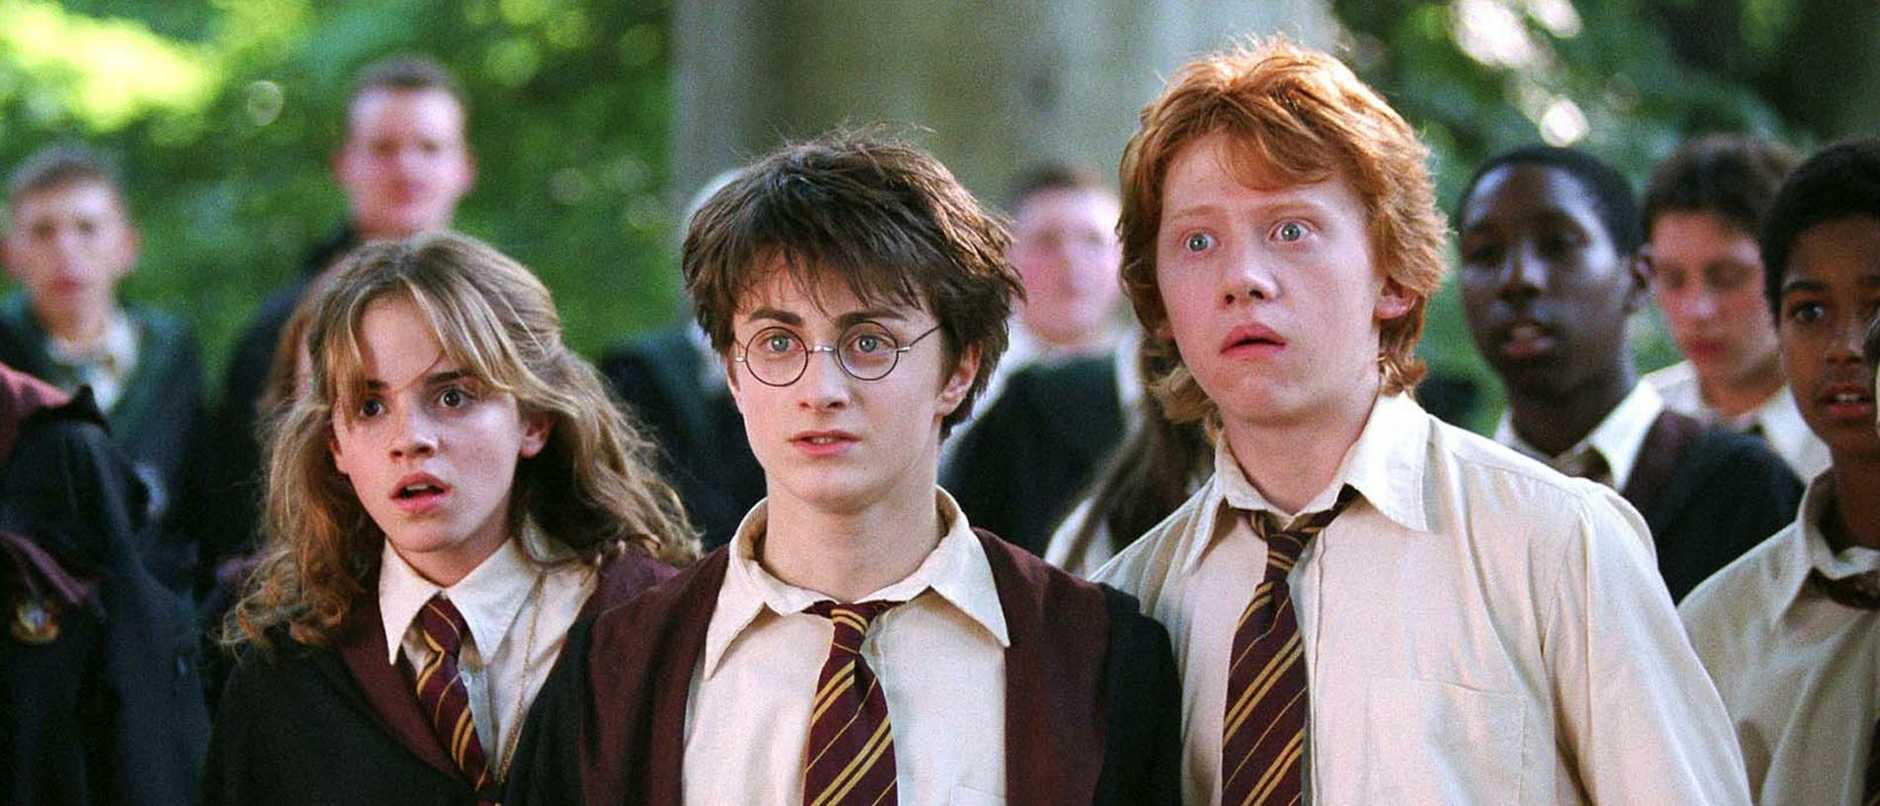 This year marks 20 years since we first travelled to Hogwarts on the big screen.